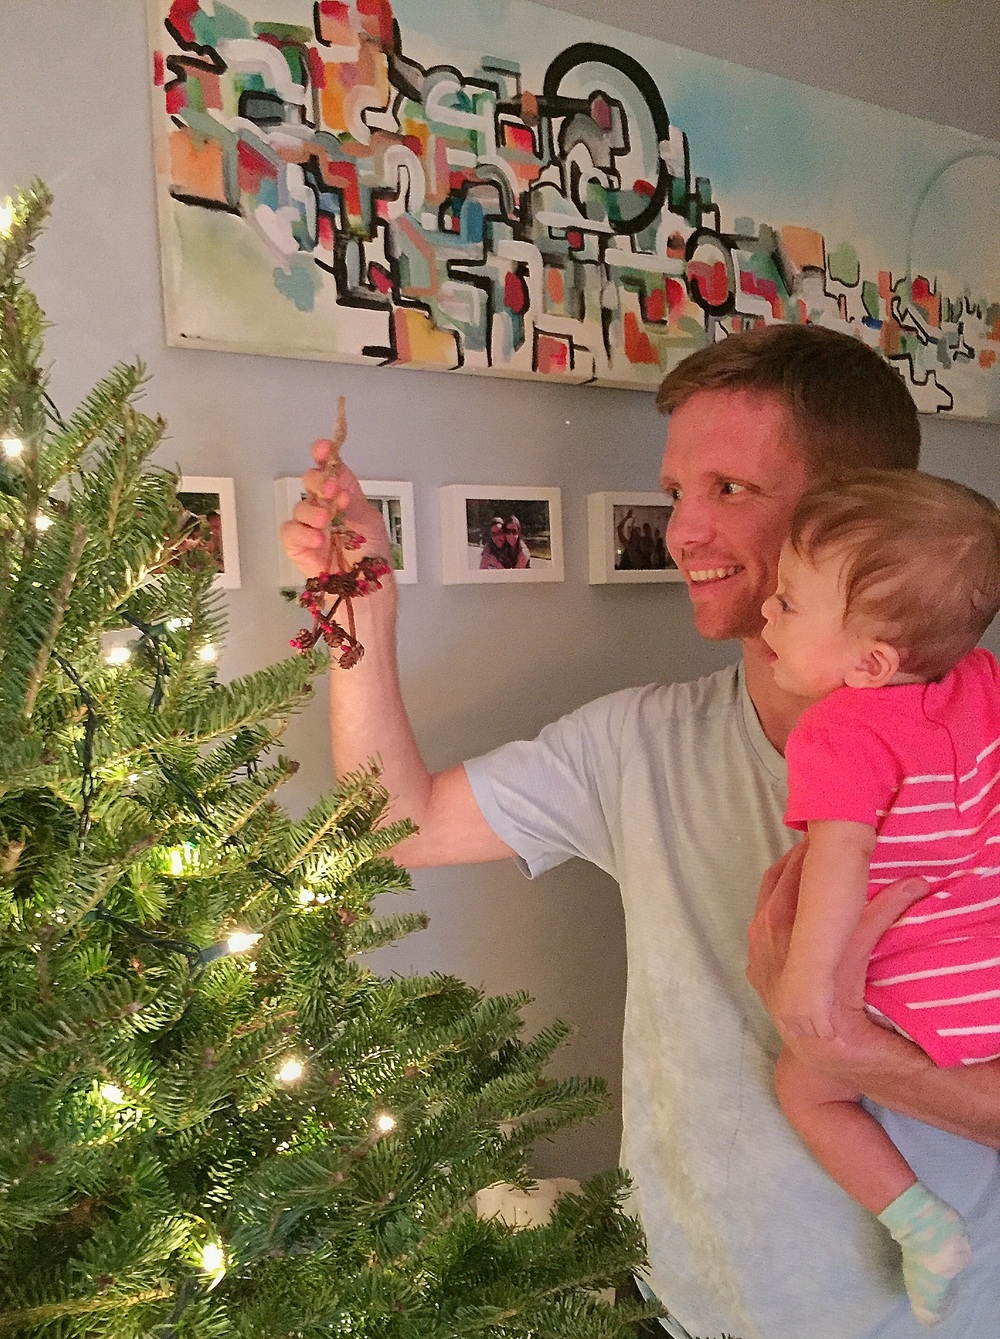 Helping Papa decorate, she had so much fun, as you can tell.